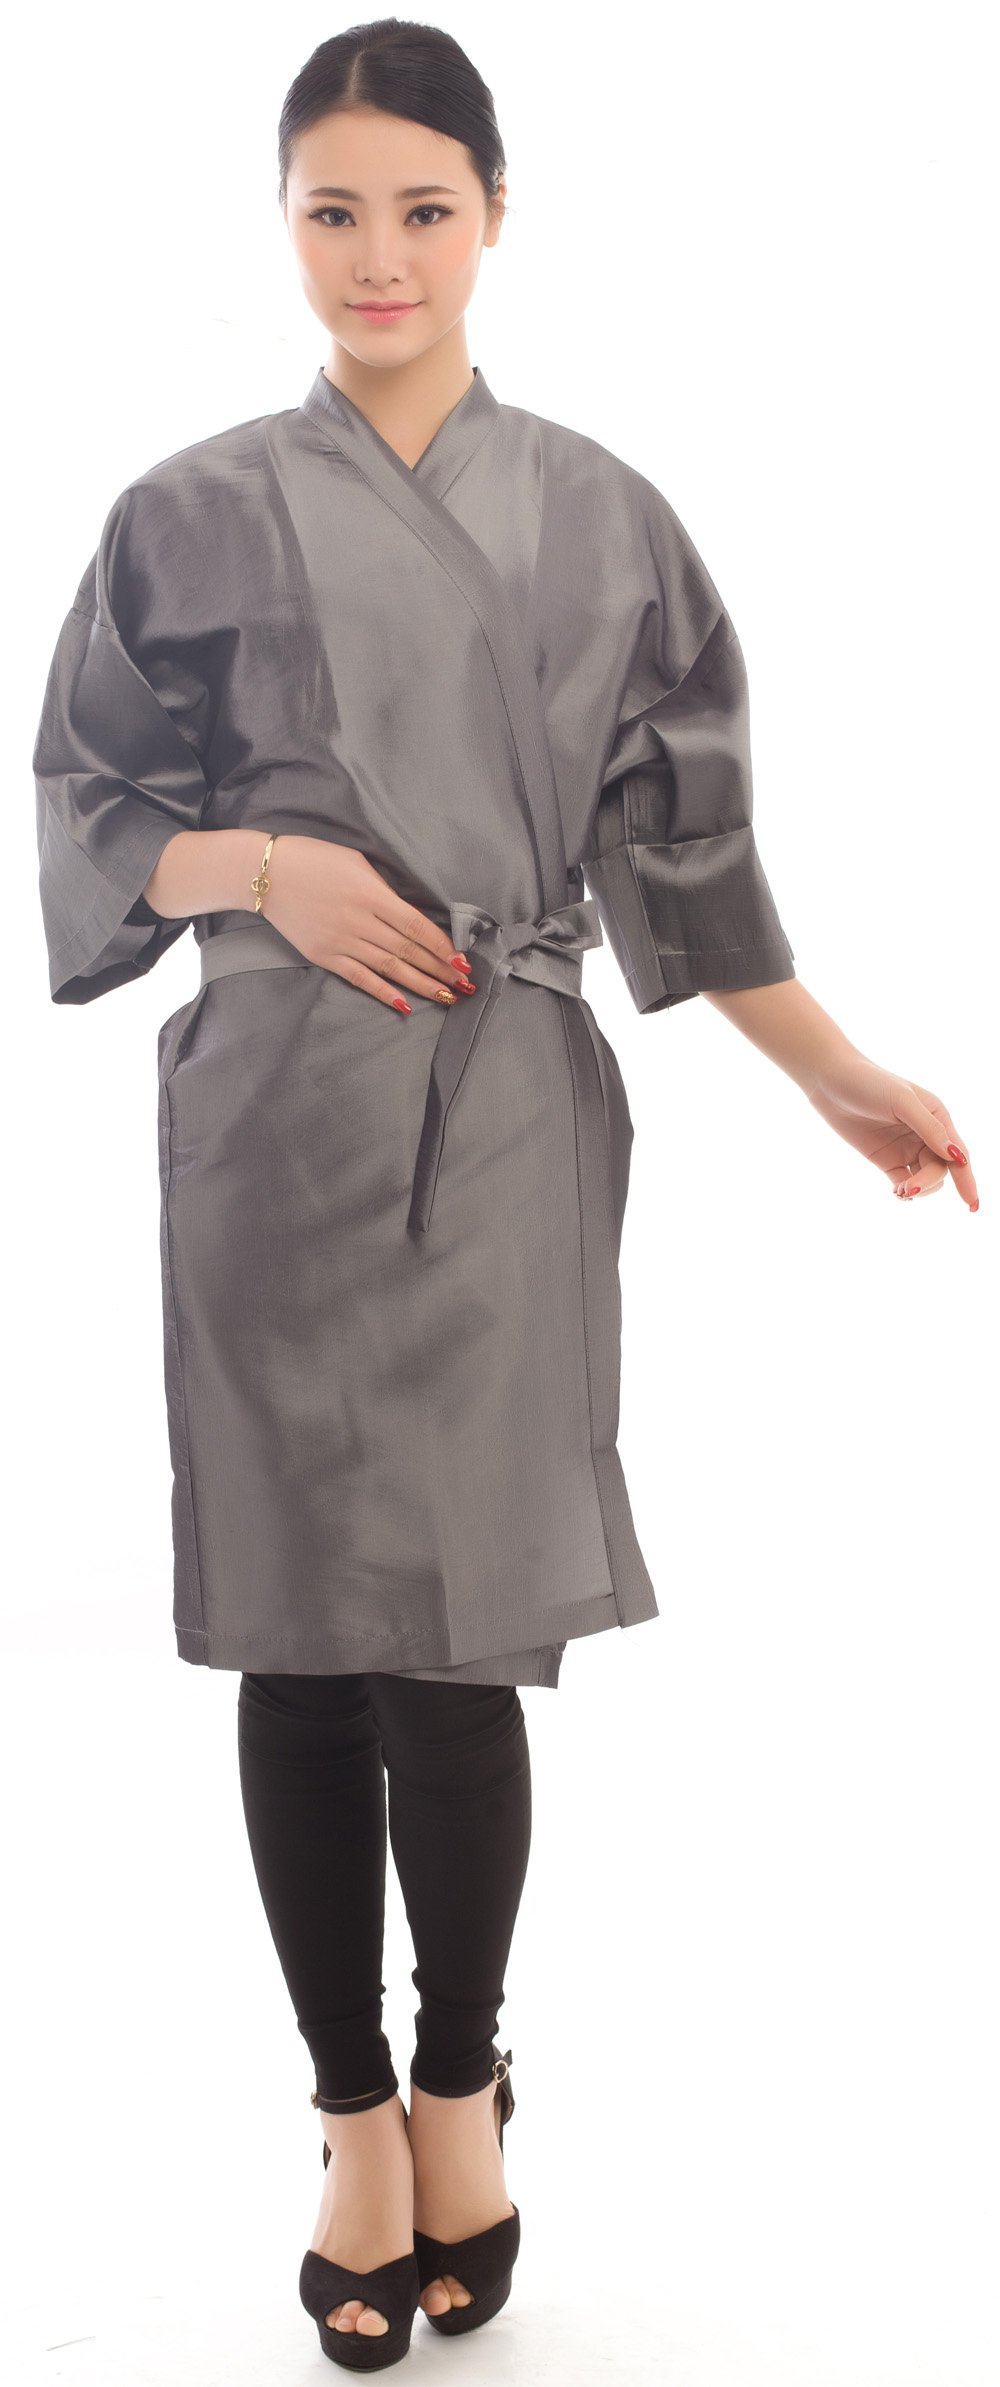 Salon Client Gown Robes Cape, Hair Salon Smock for Clients- Kimono Style (Grey)